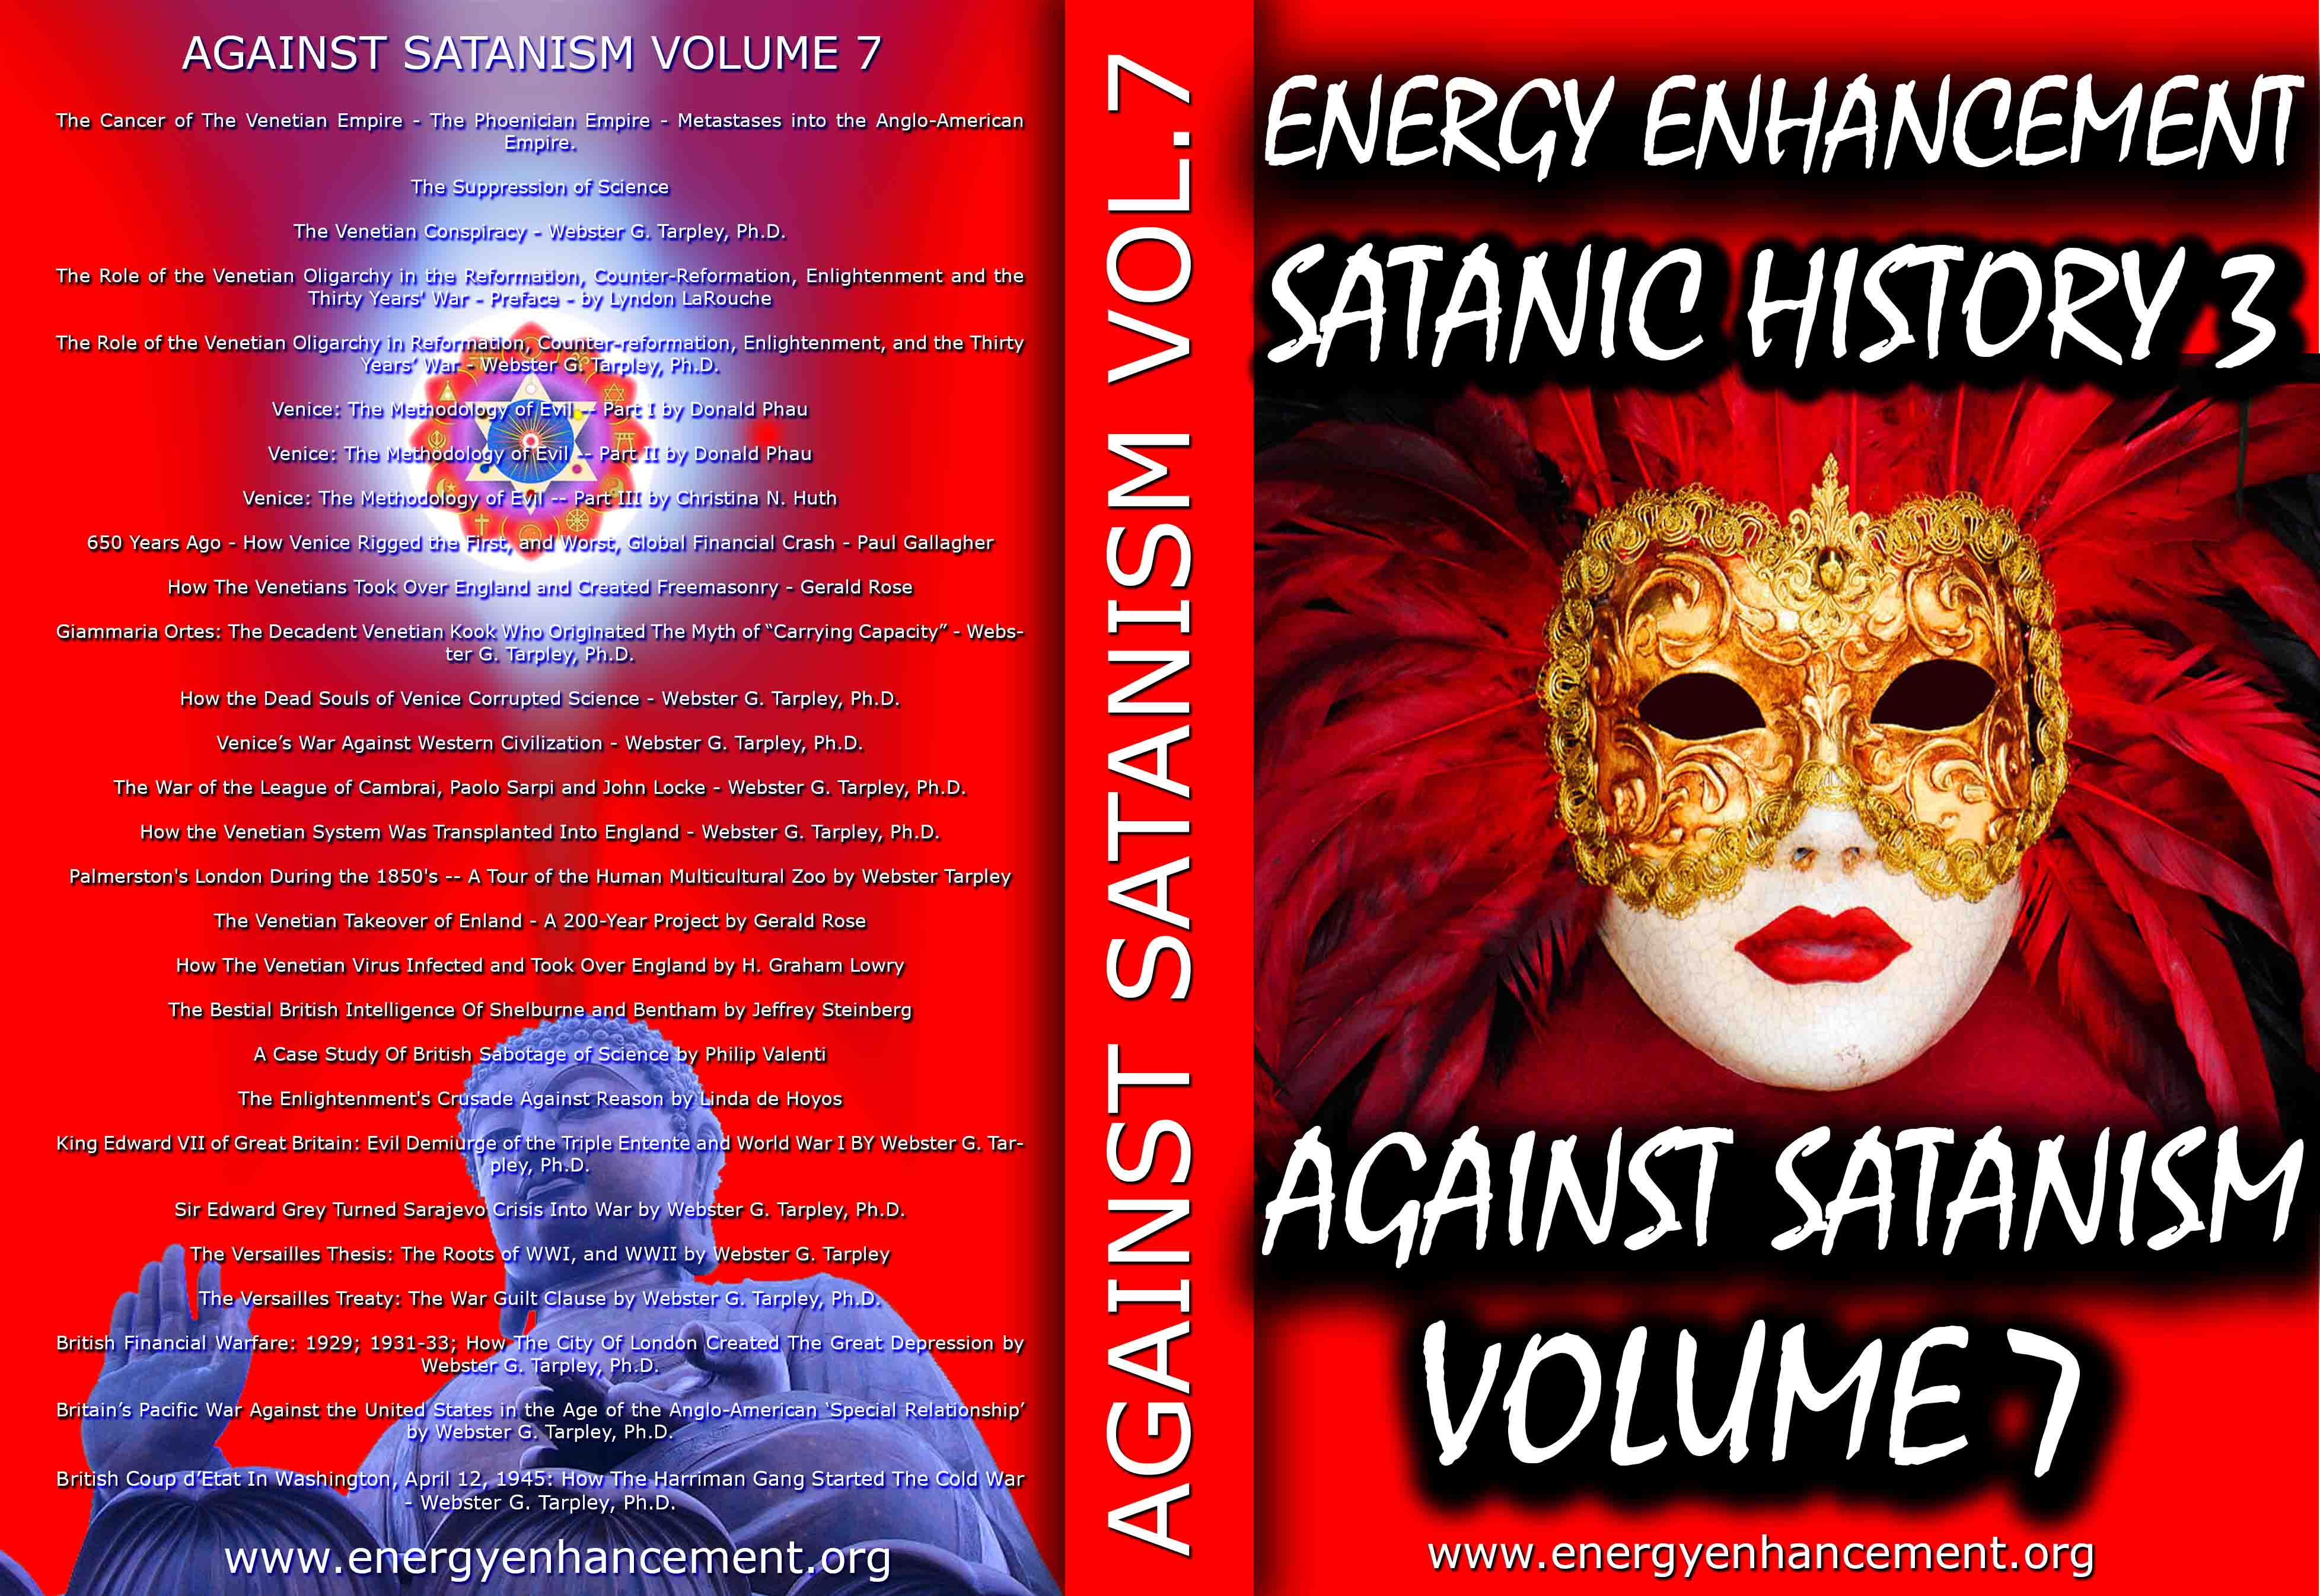 Description: Description: C:\wnew\Sacred-Energy\Against-Satanism-Volume-7\VOL 7 FULL.jpg